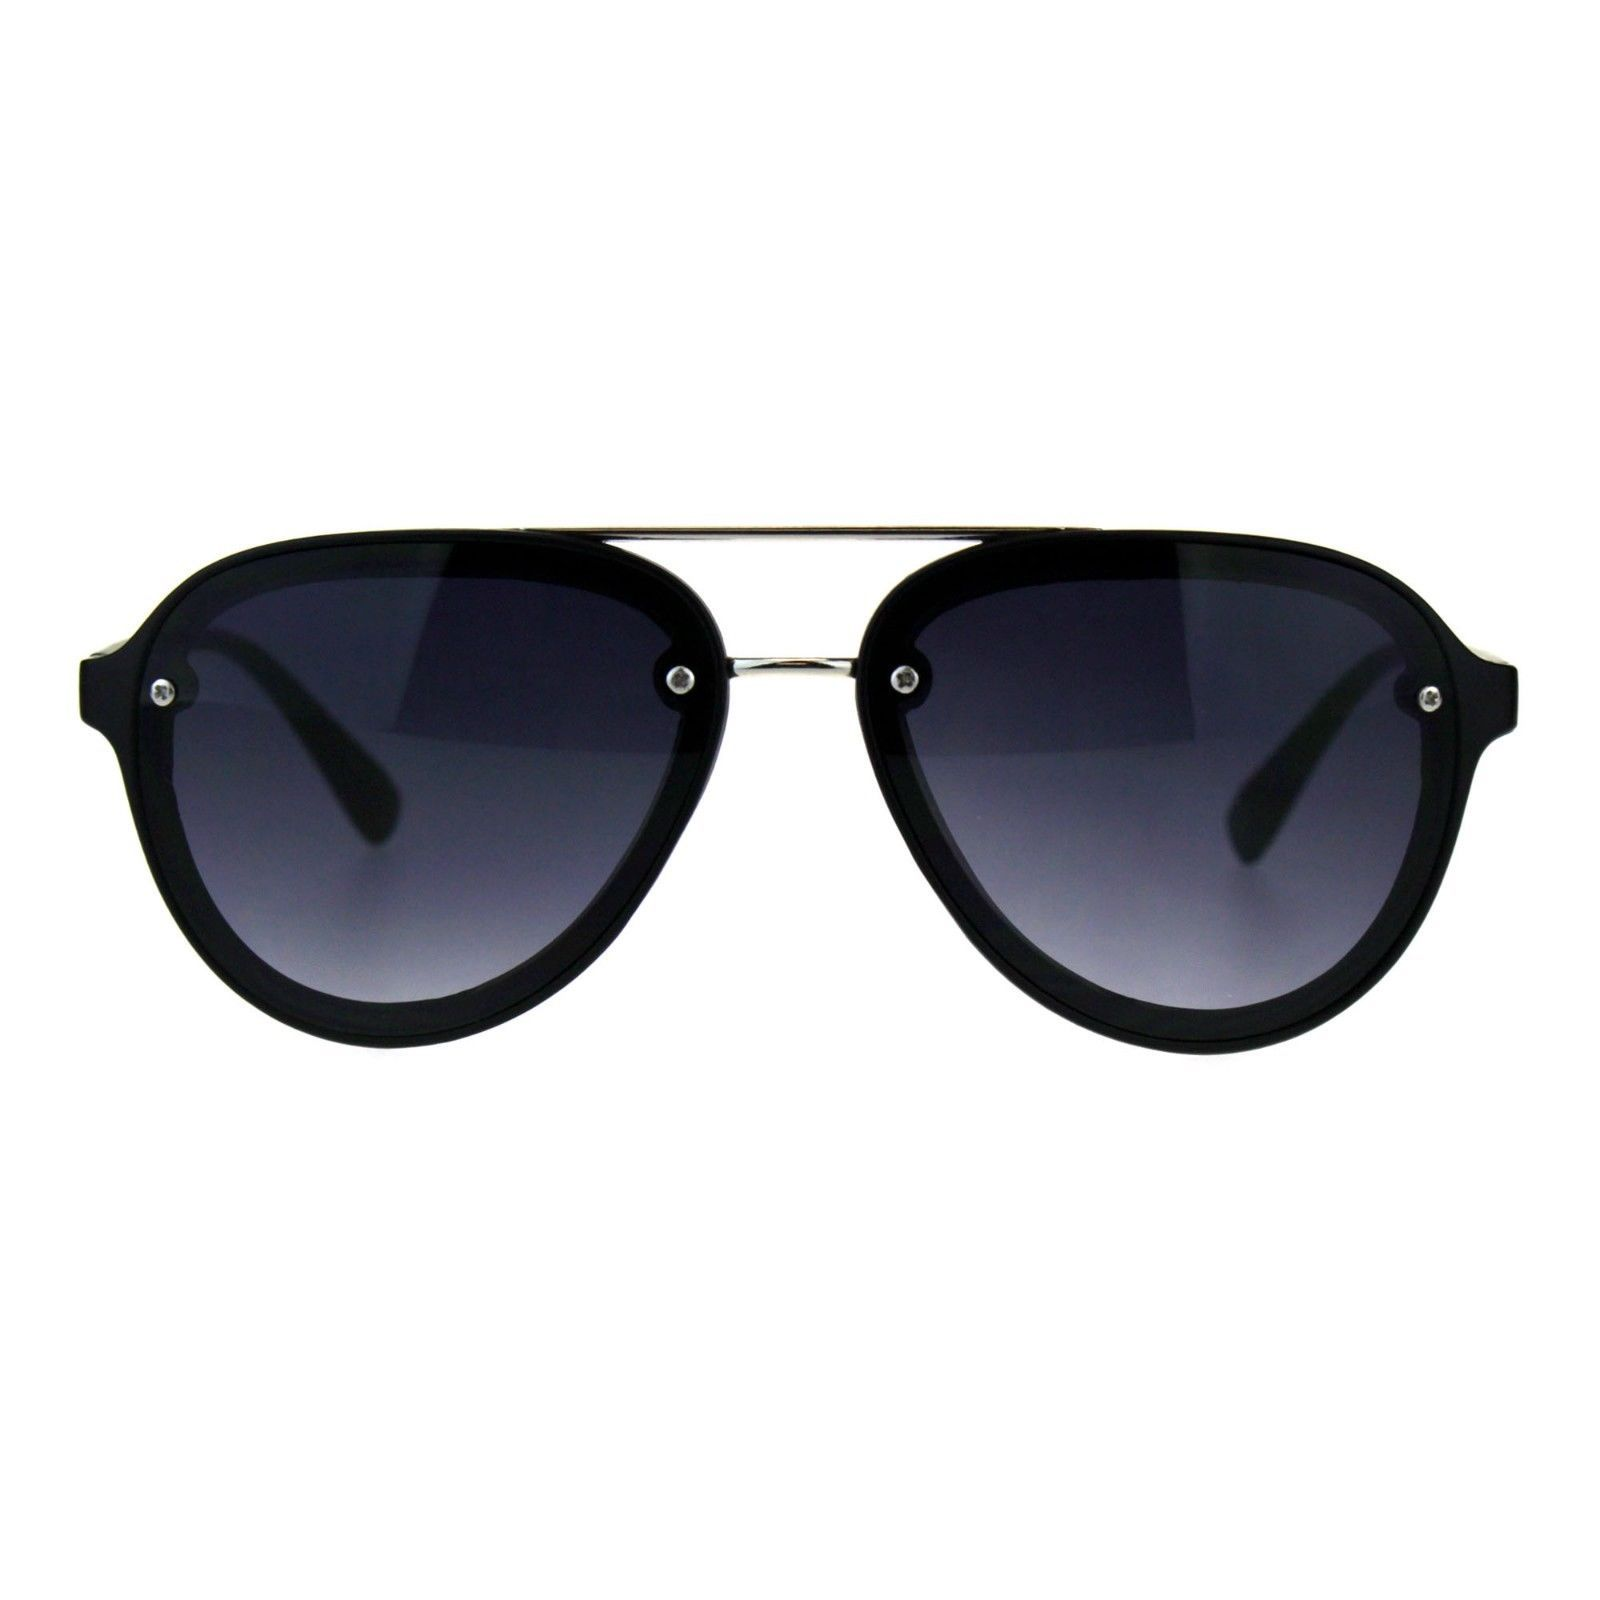 Unisex Aviator Sunglasses Retro Fashion Designer Style Aviators